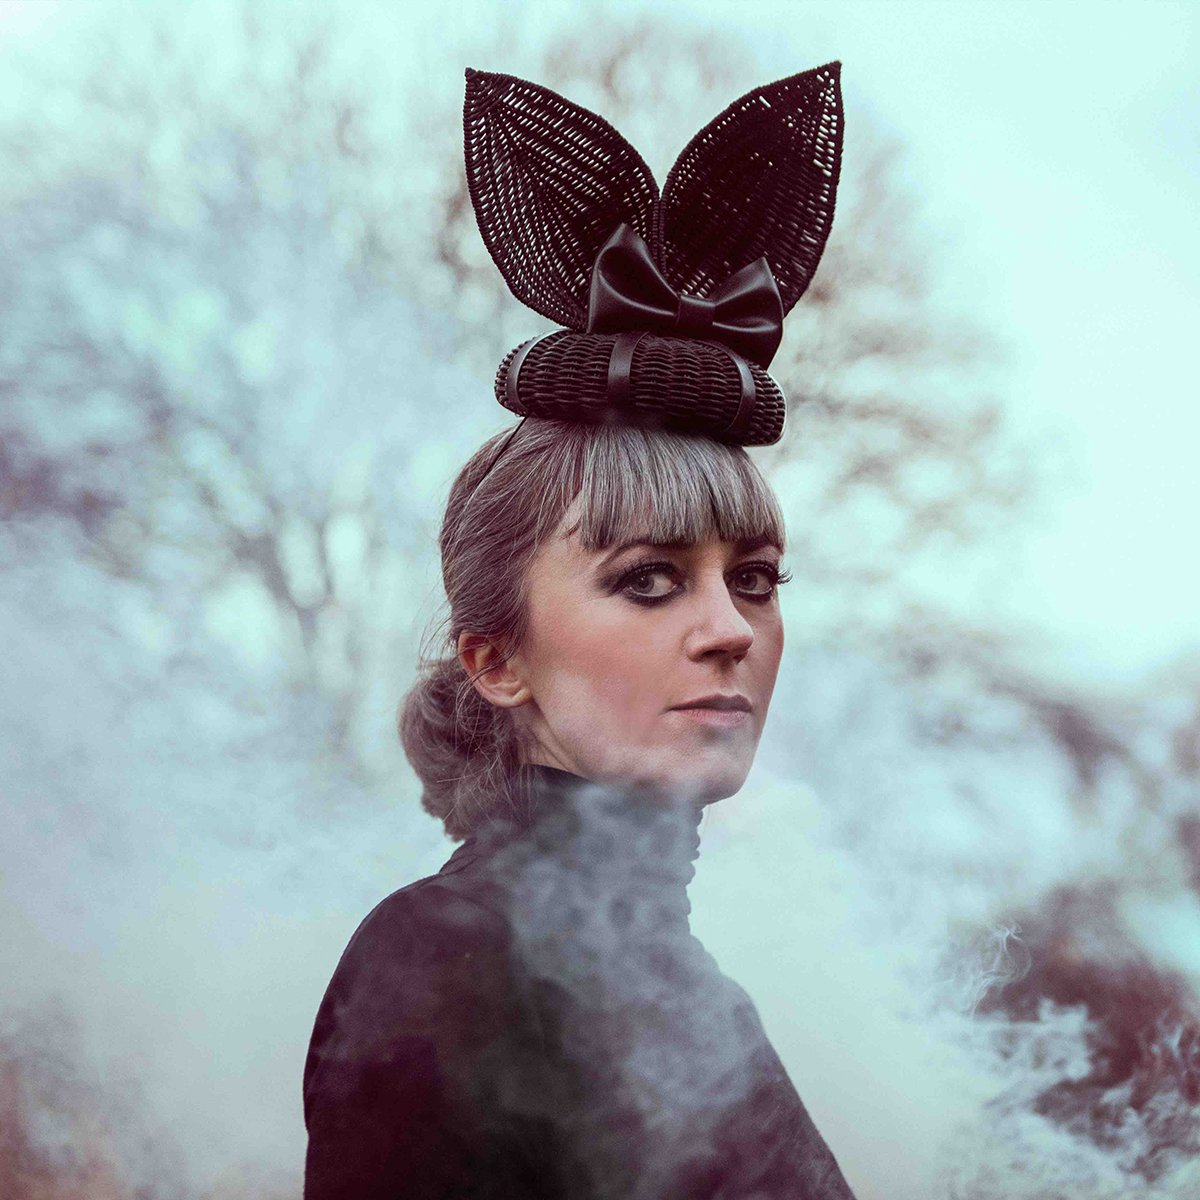 Helen Marnie From Ladytron Drops New Material